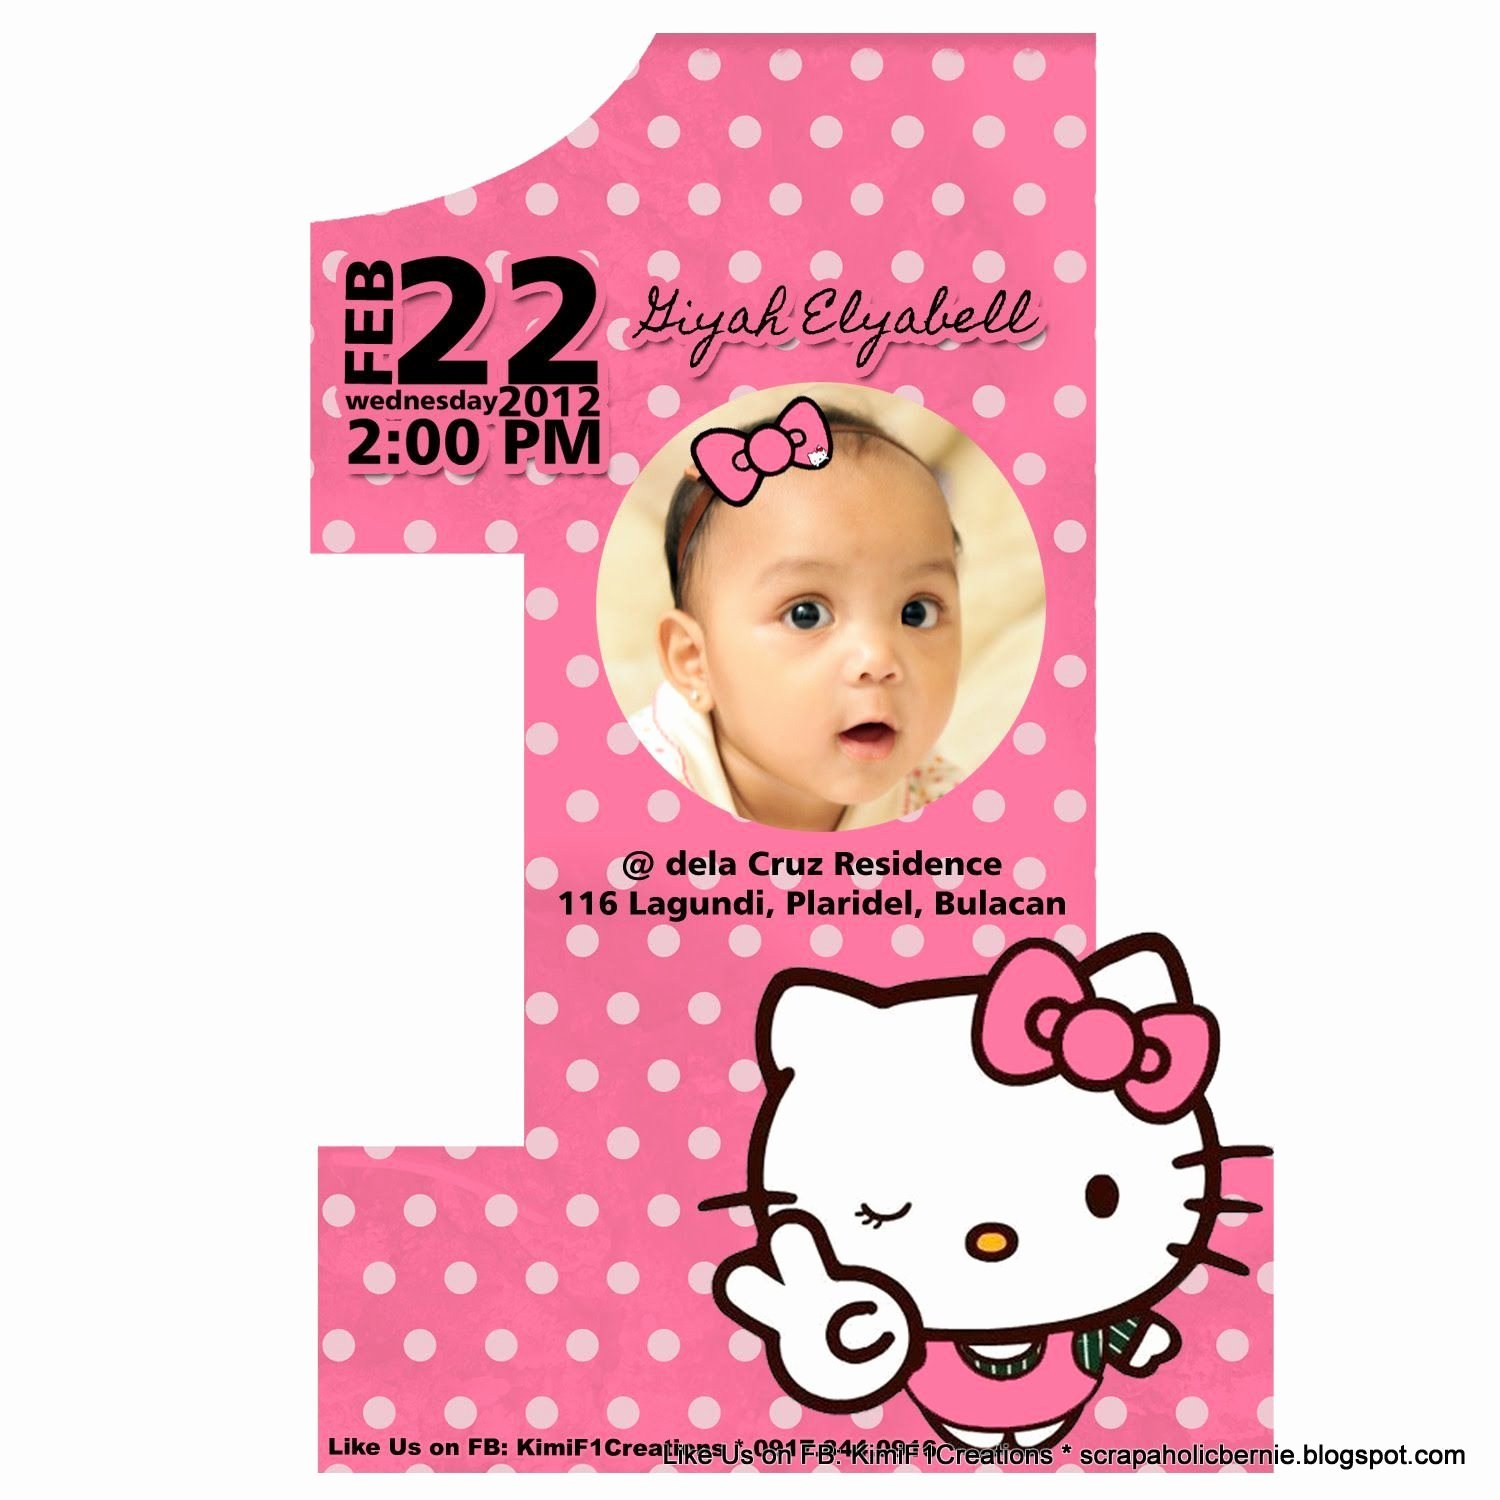 1st Birthday Invitation Template Beautiful 1st Birthday and Christening Invitation Templates